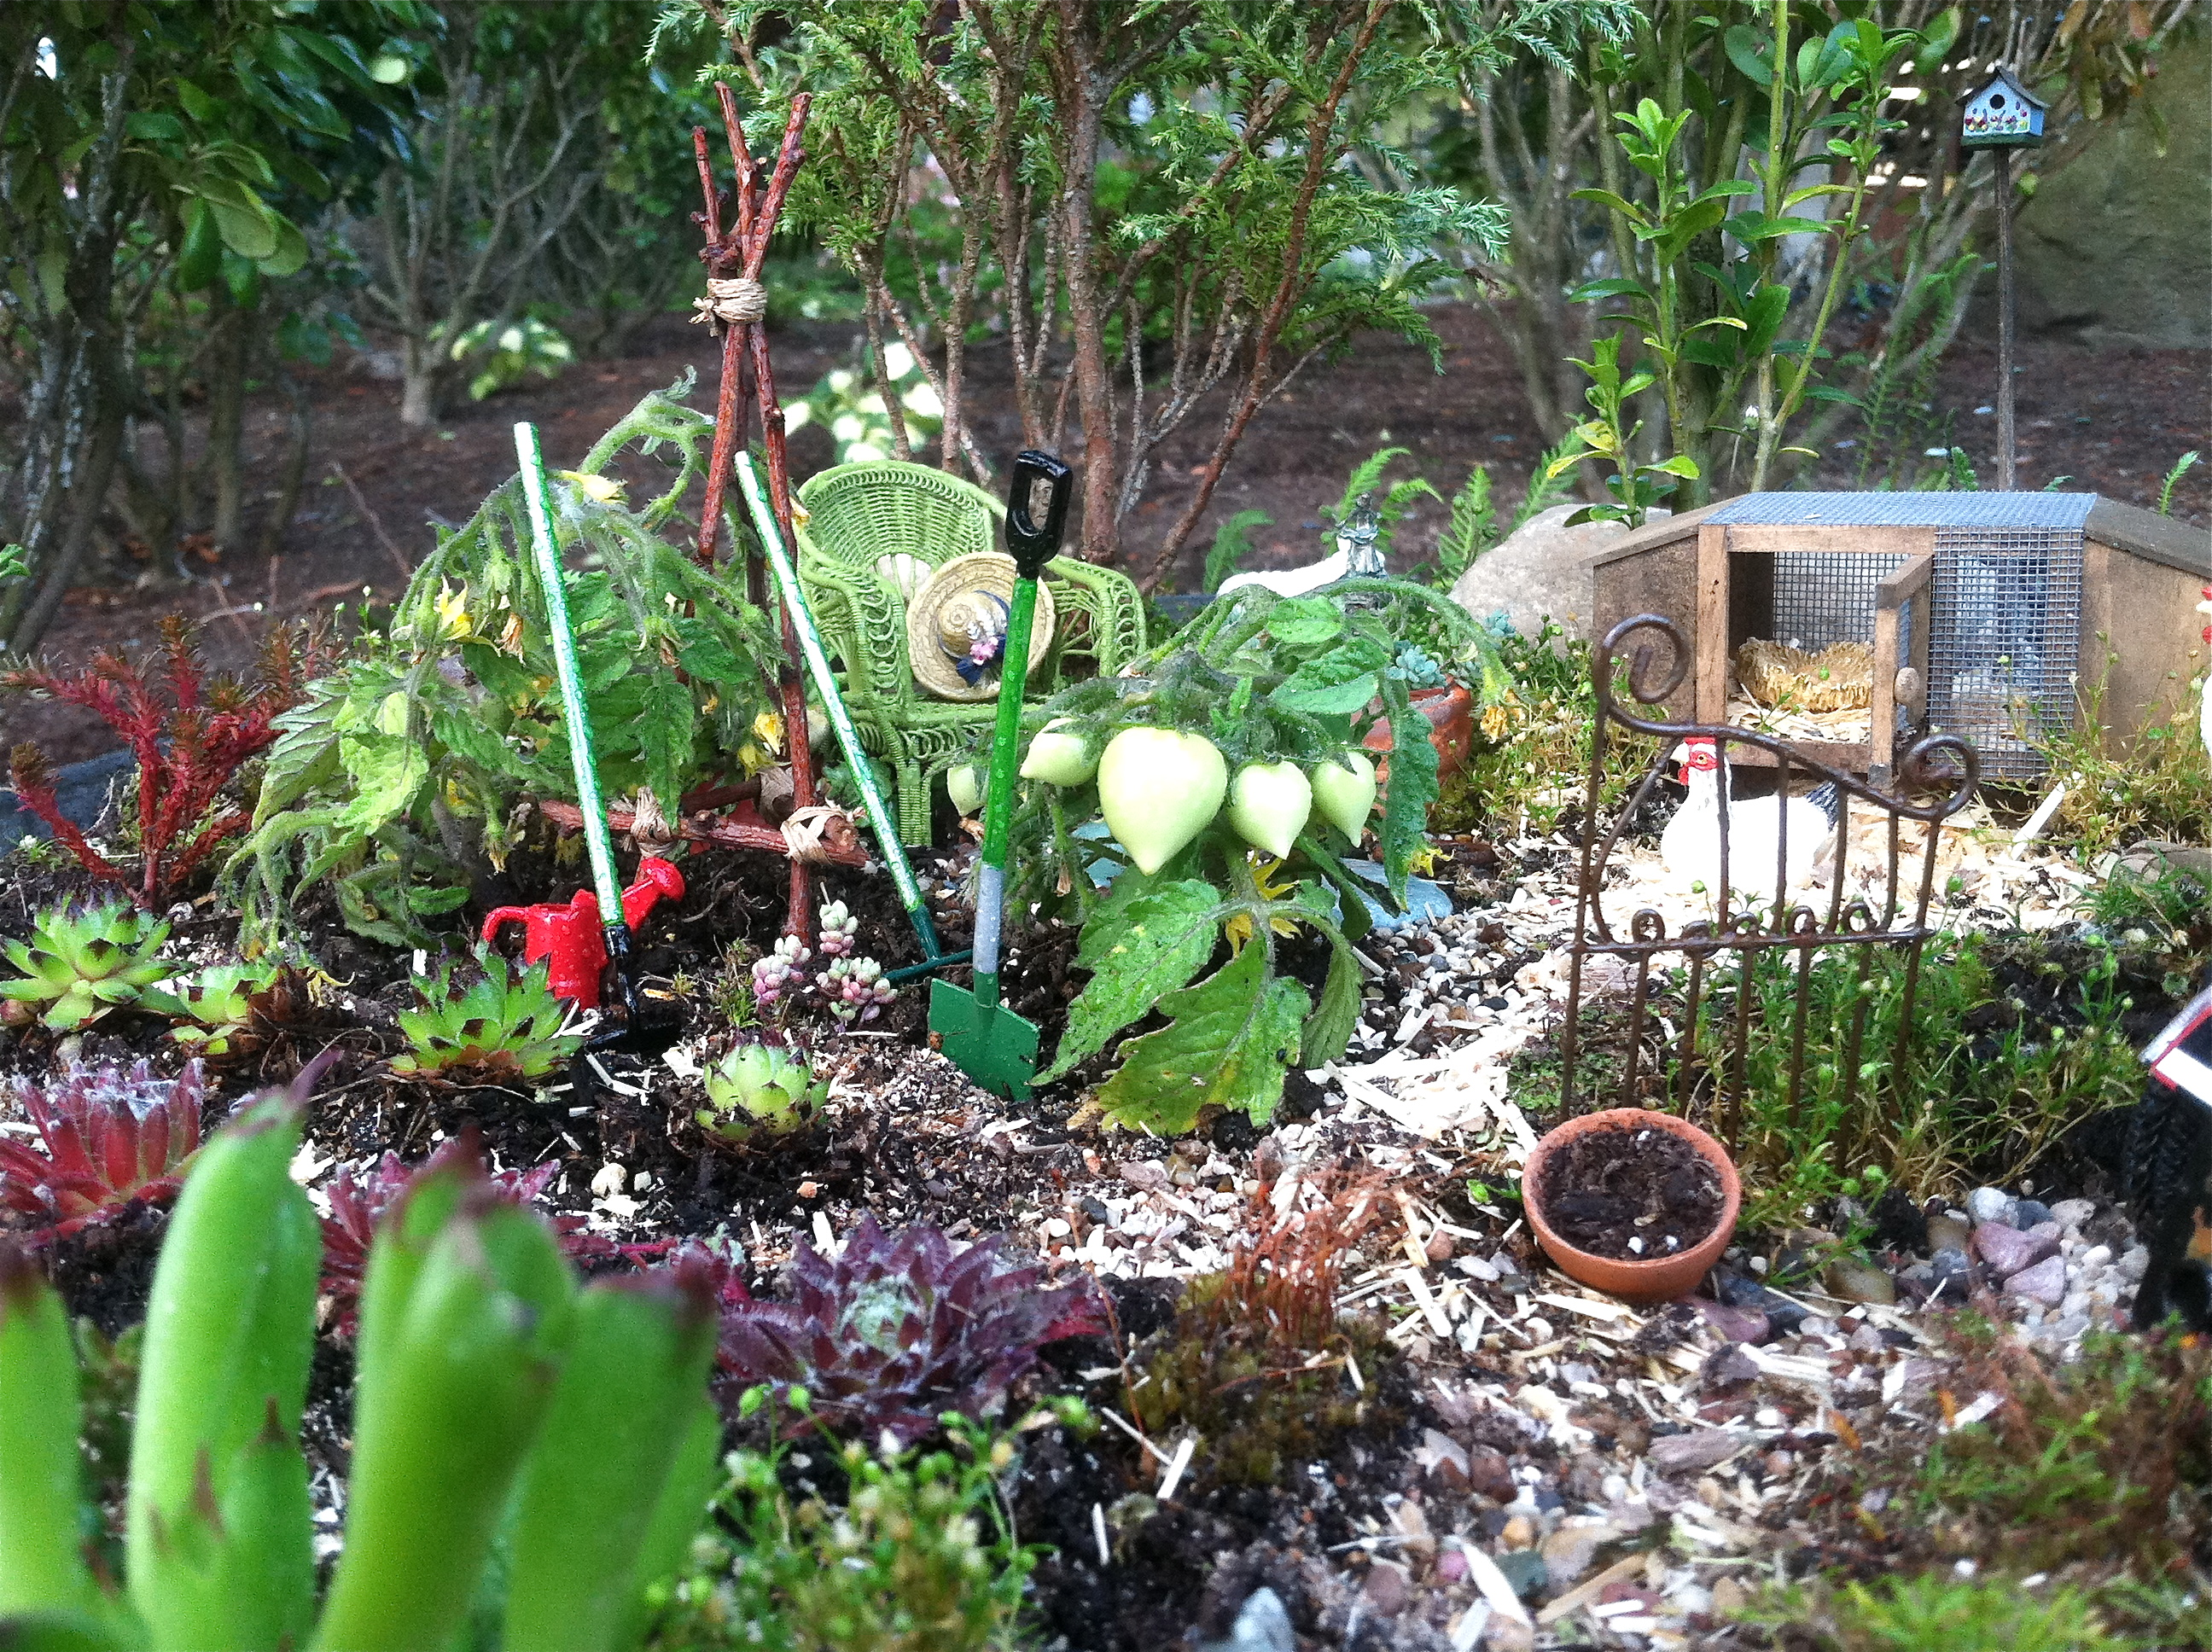 Miniature Farm Garden with real miniature tomatoes called 'Tom Thumb'